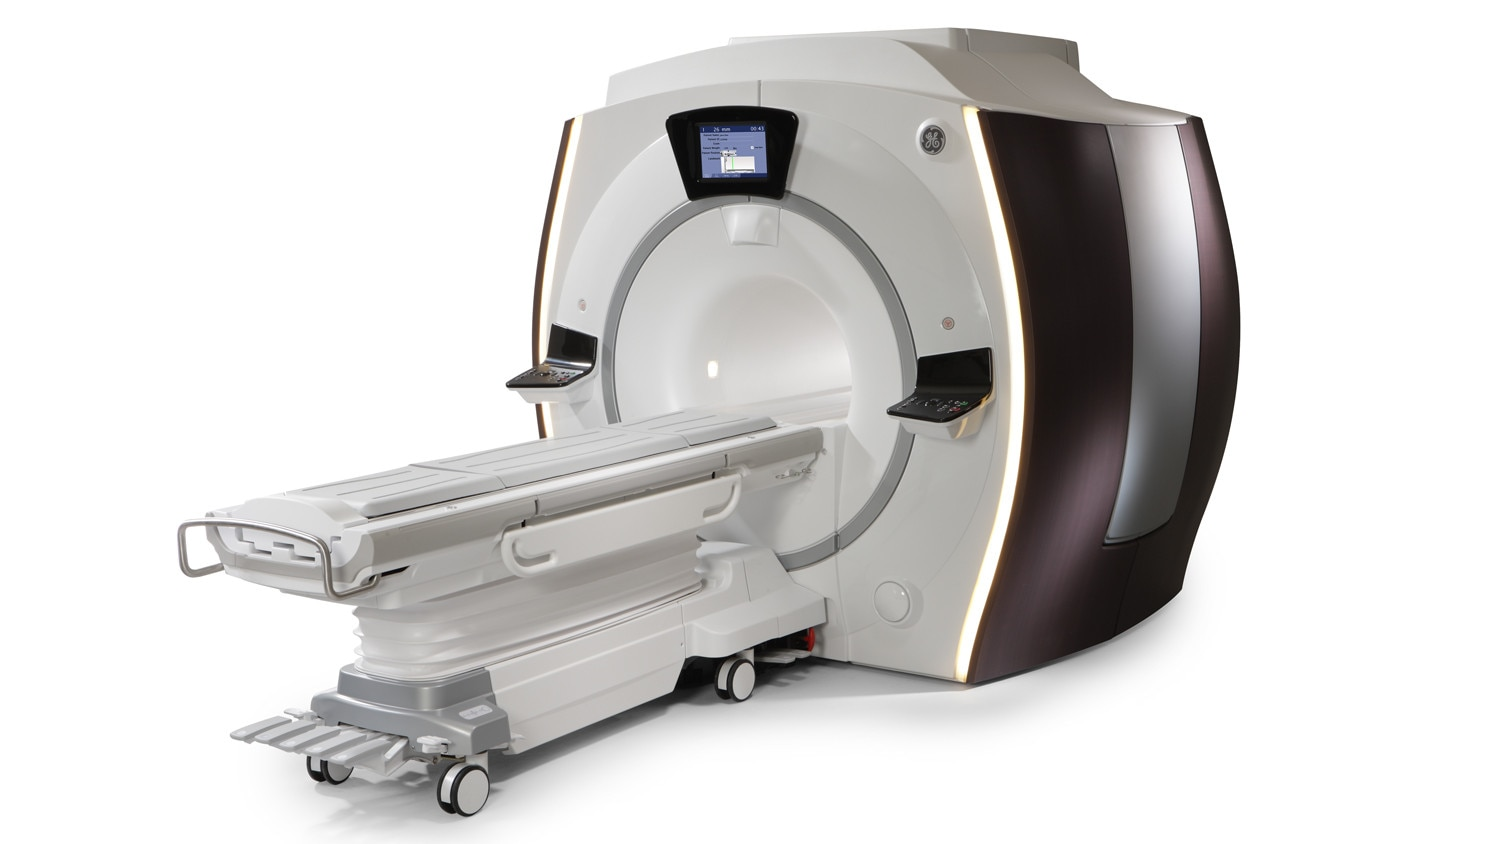 categories-magnetic-resonance-imaging-discovery-mr750w-3-0t-discoverymr750w30tproduct2.jpg